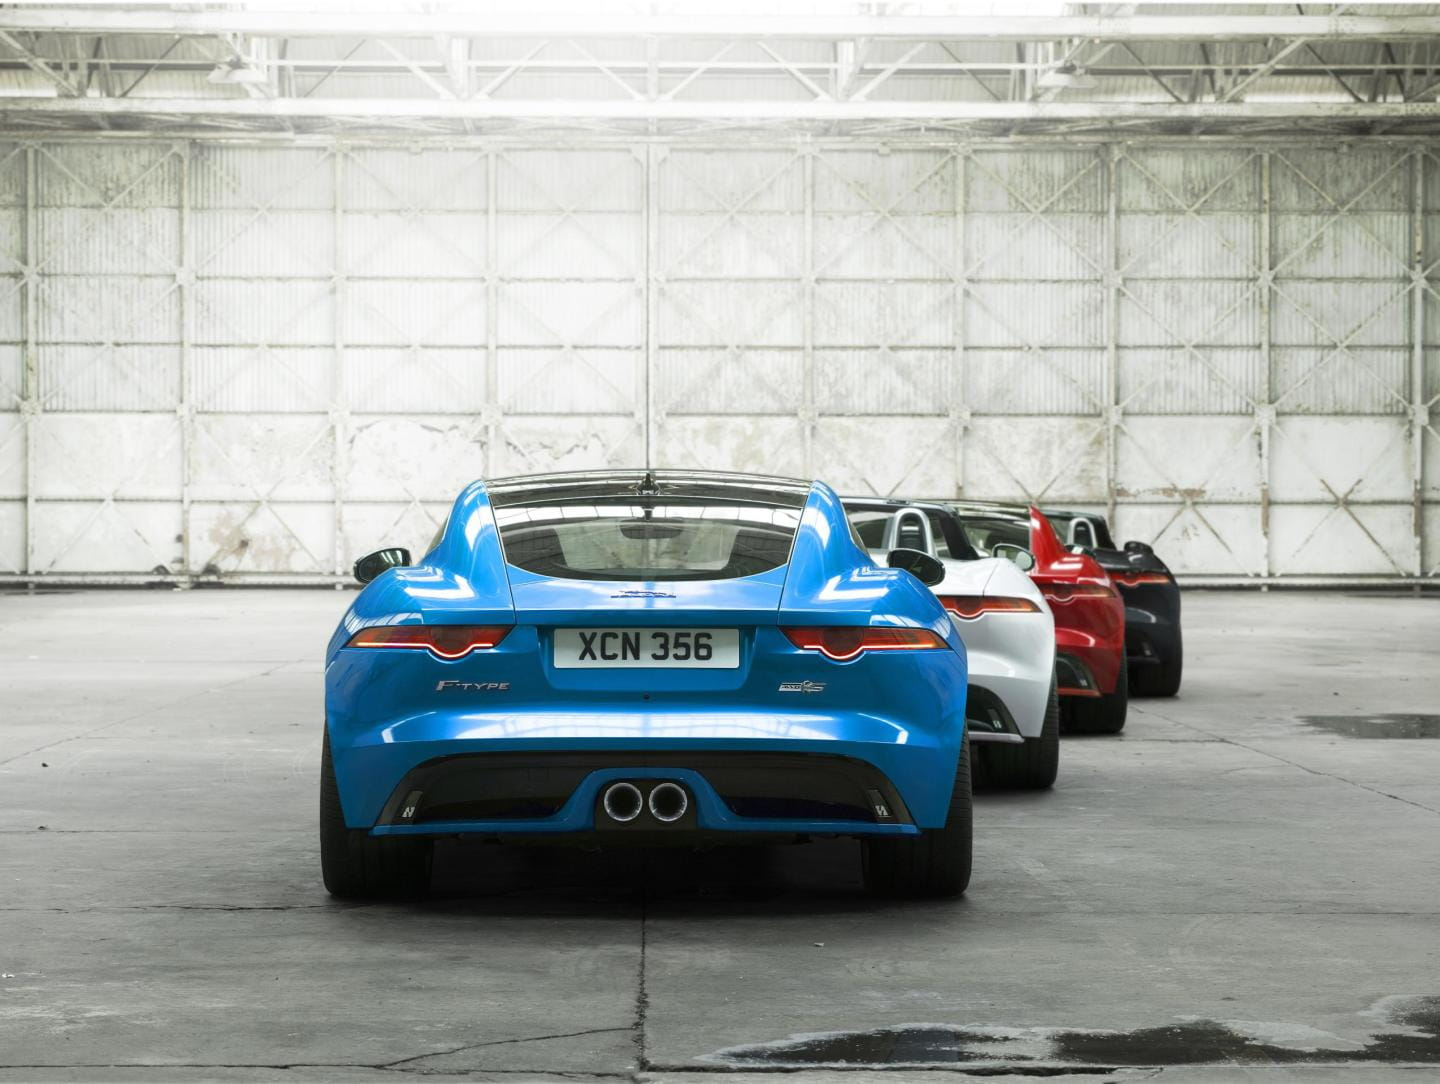 jaguar_f-type_british_edition_DM_1